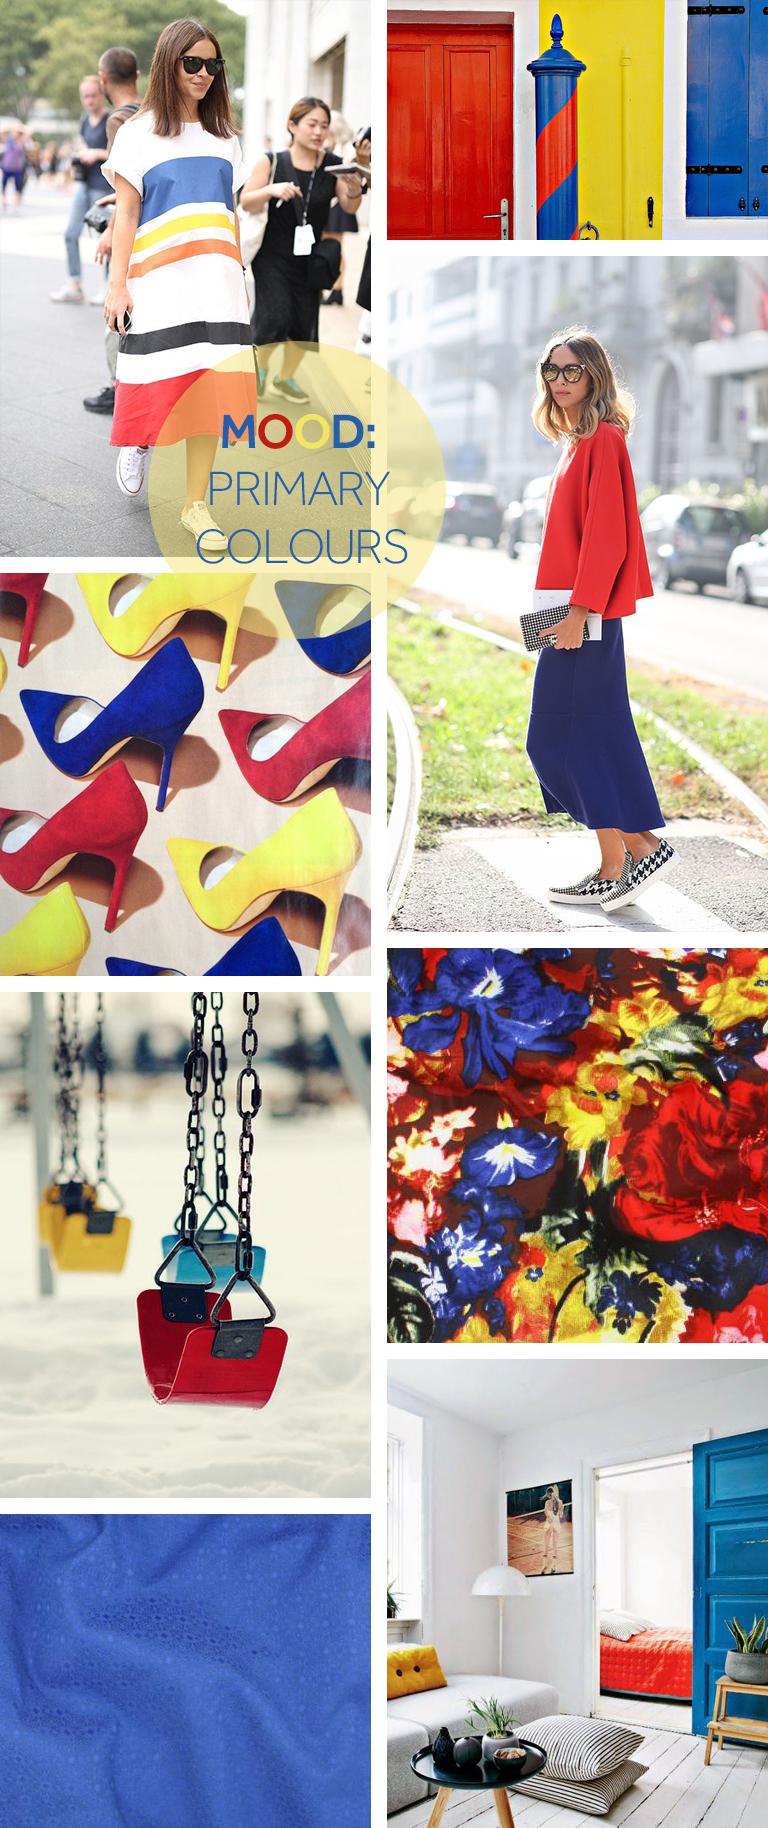 mood-primary-colors